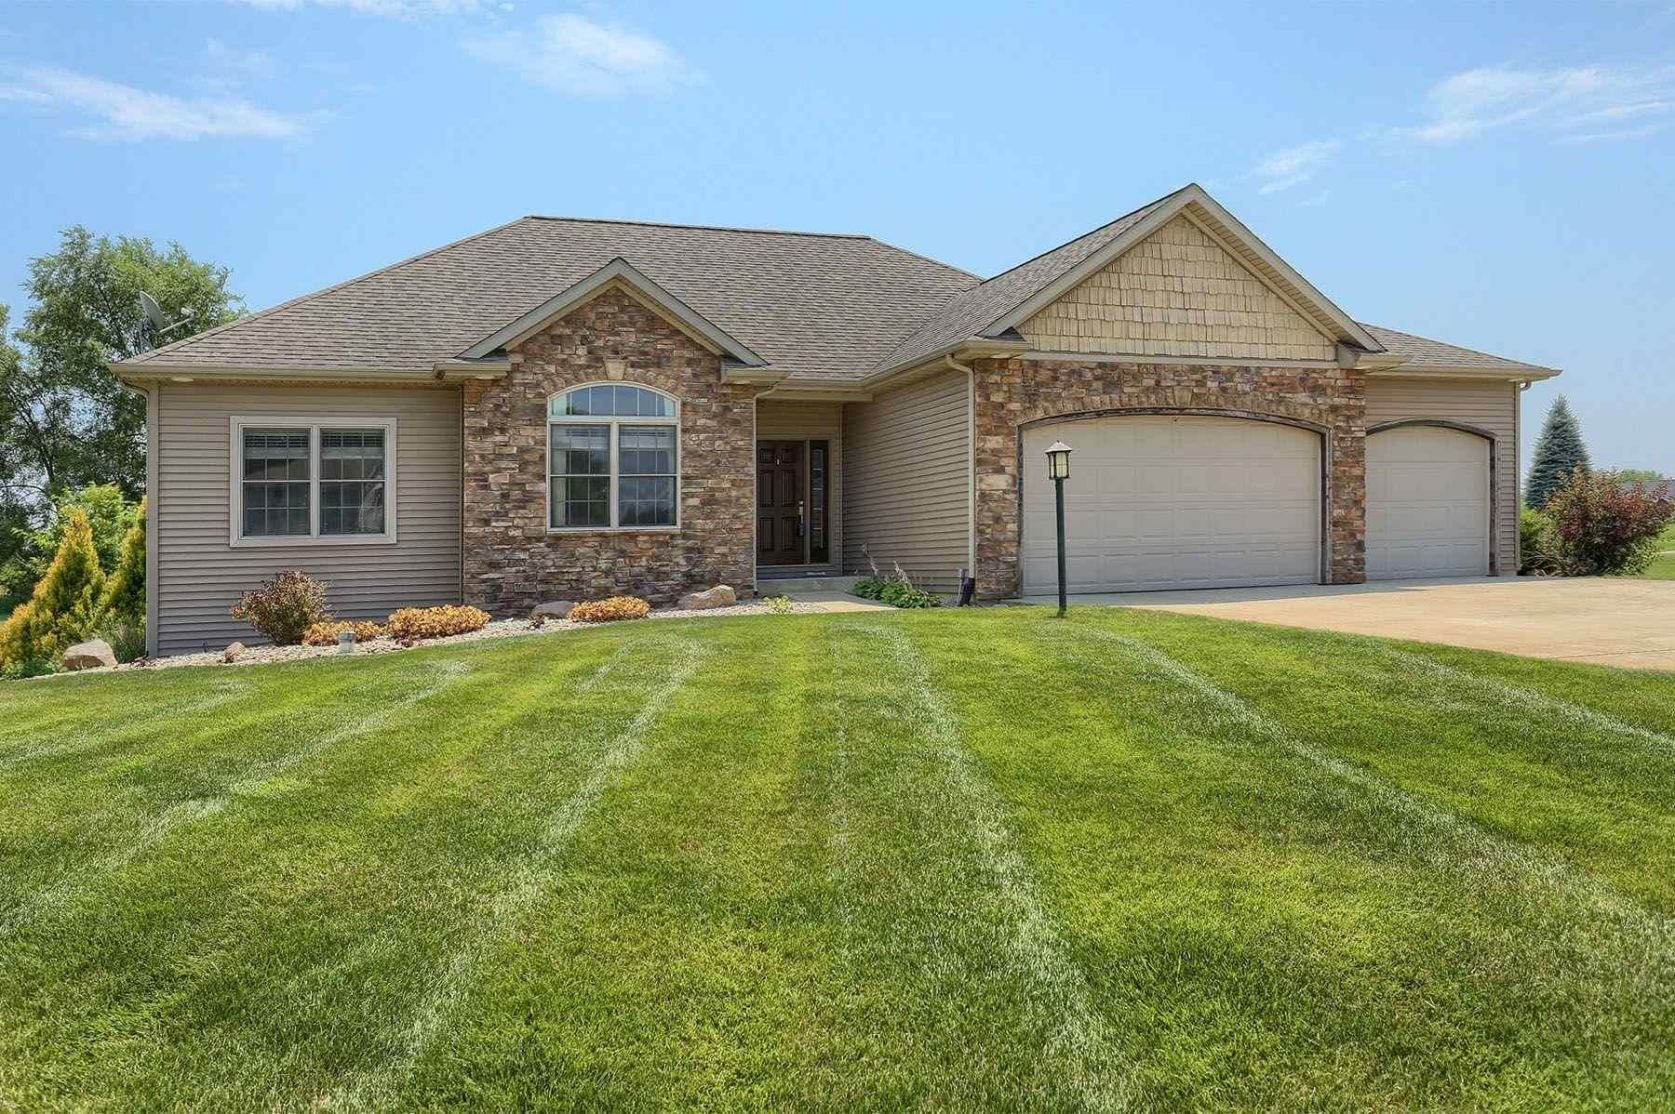 Photo of 1198 N Shaleview Court, Warsaw, IN 46582 (MLS # 202026266)